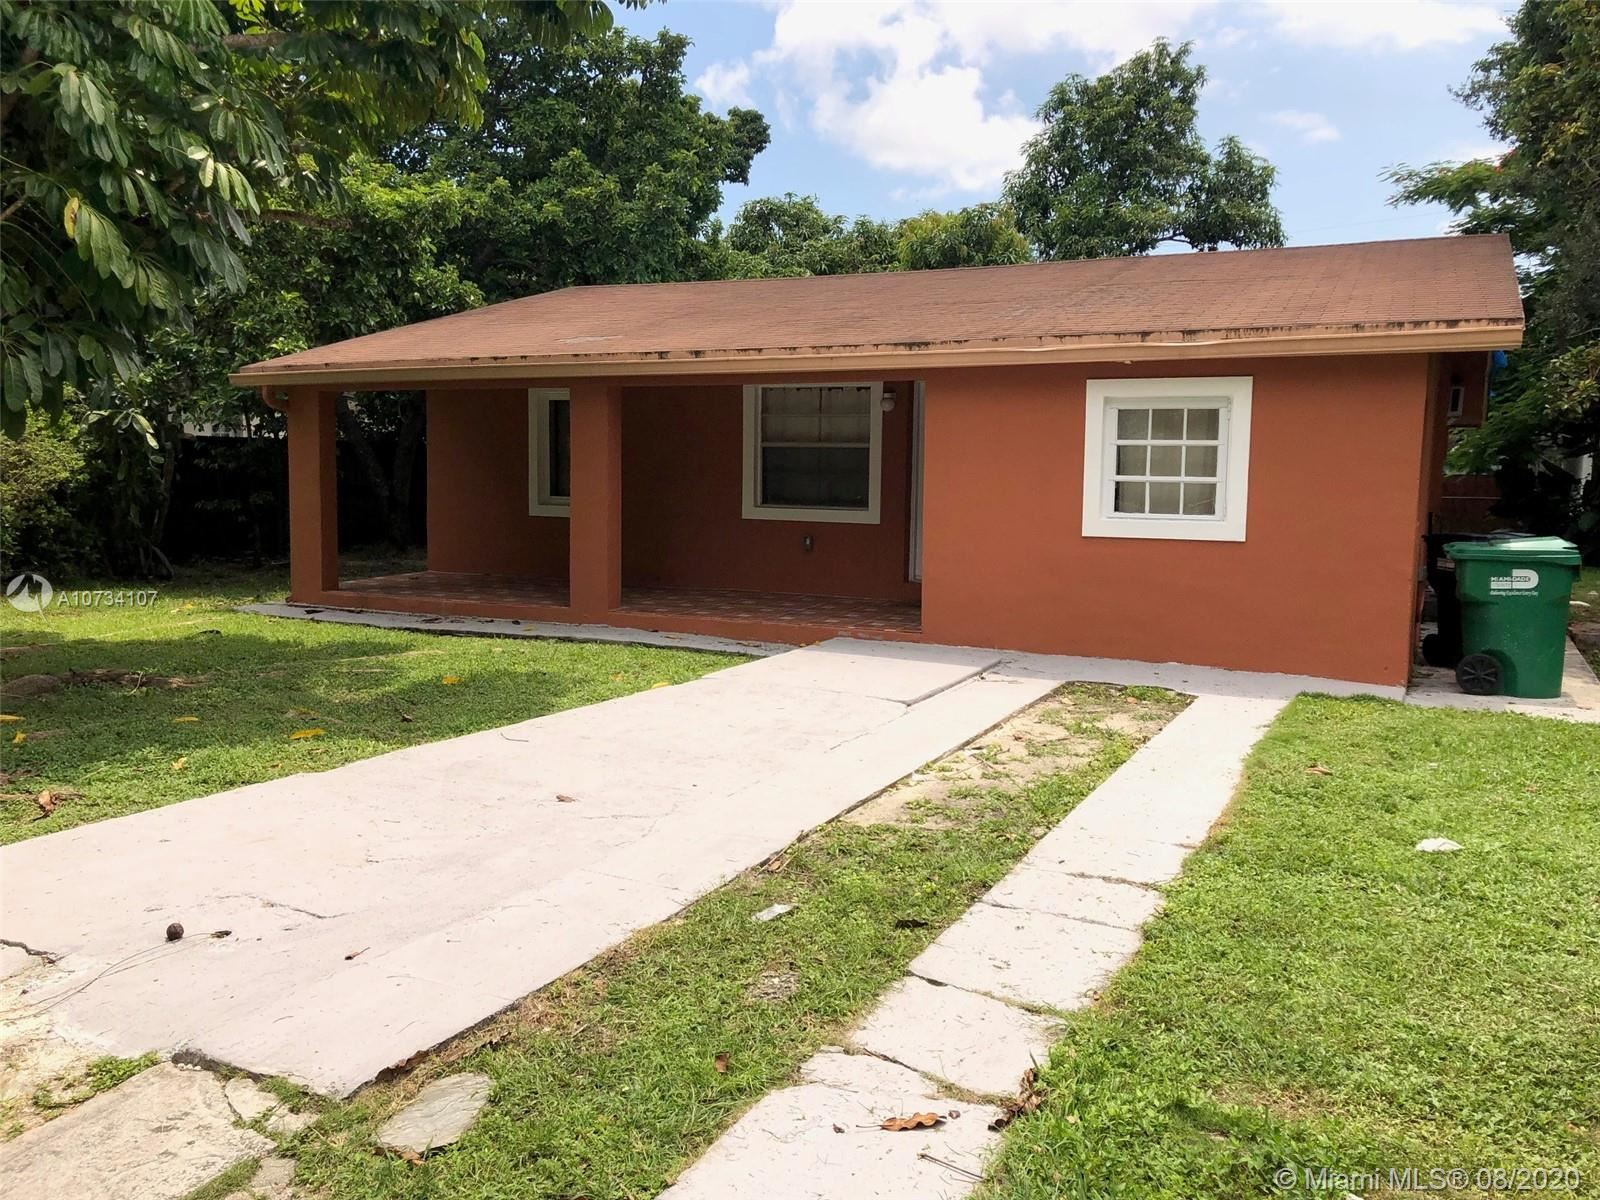 5920 SW 59 ST, South Miami, FL 33143 - #: A10734107